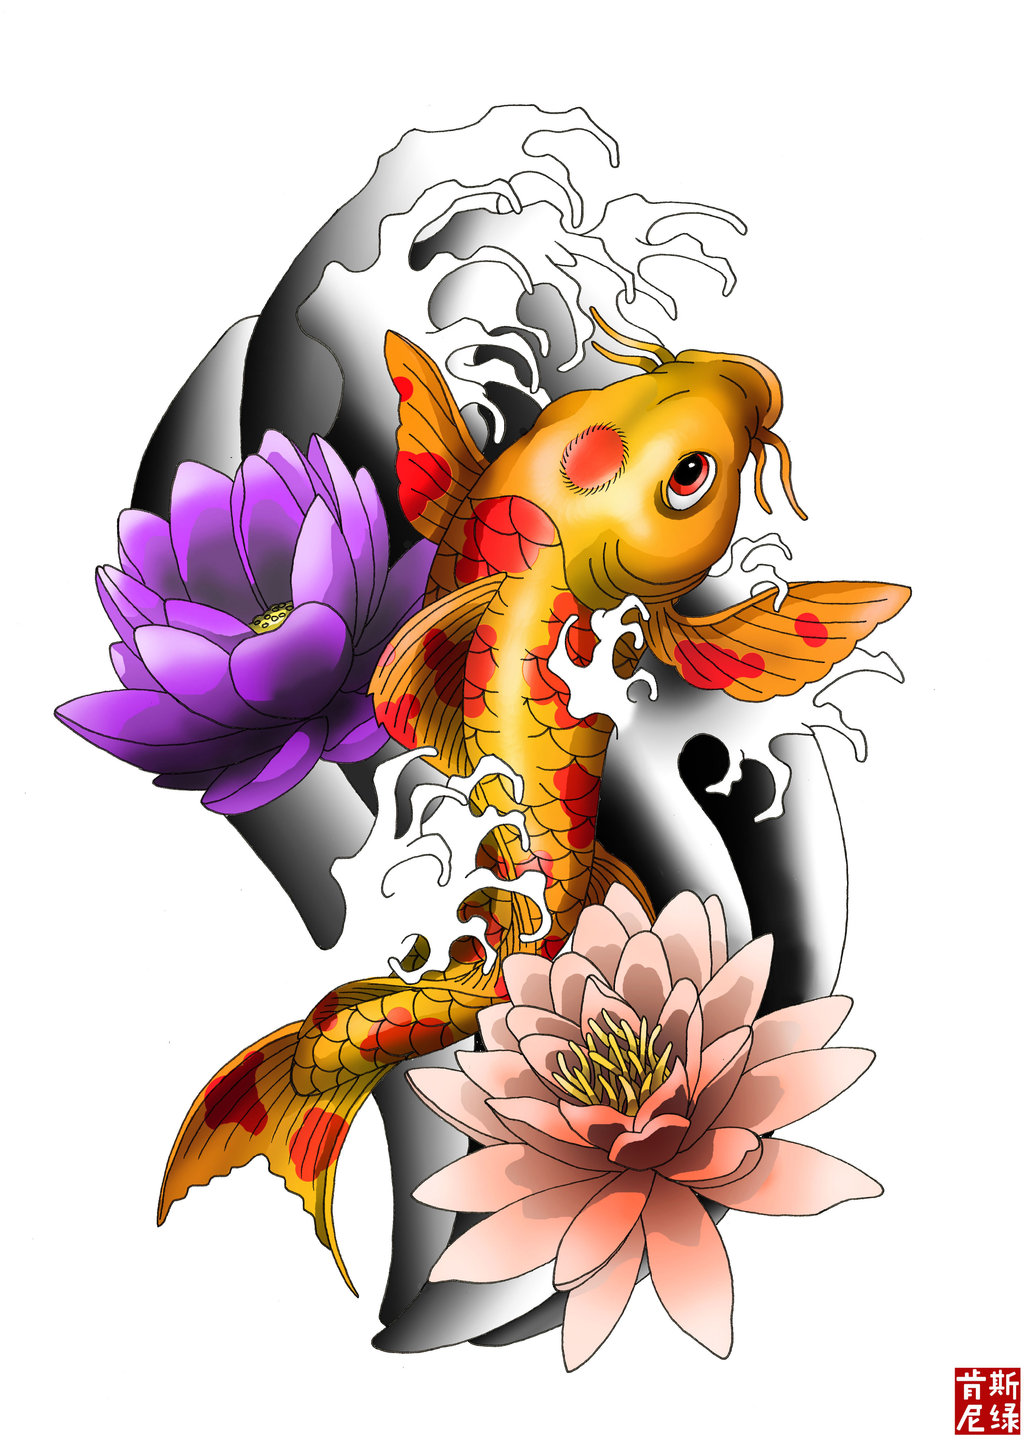 Colored Lotus Flowers And Carp Fish Tattoo Design